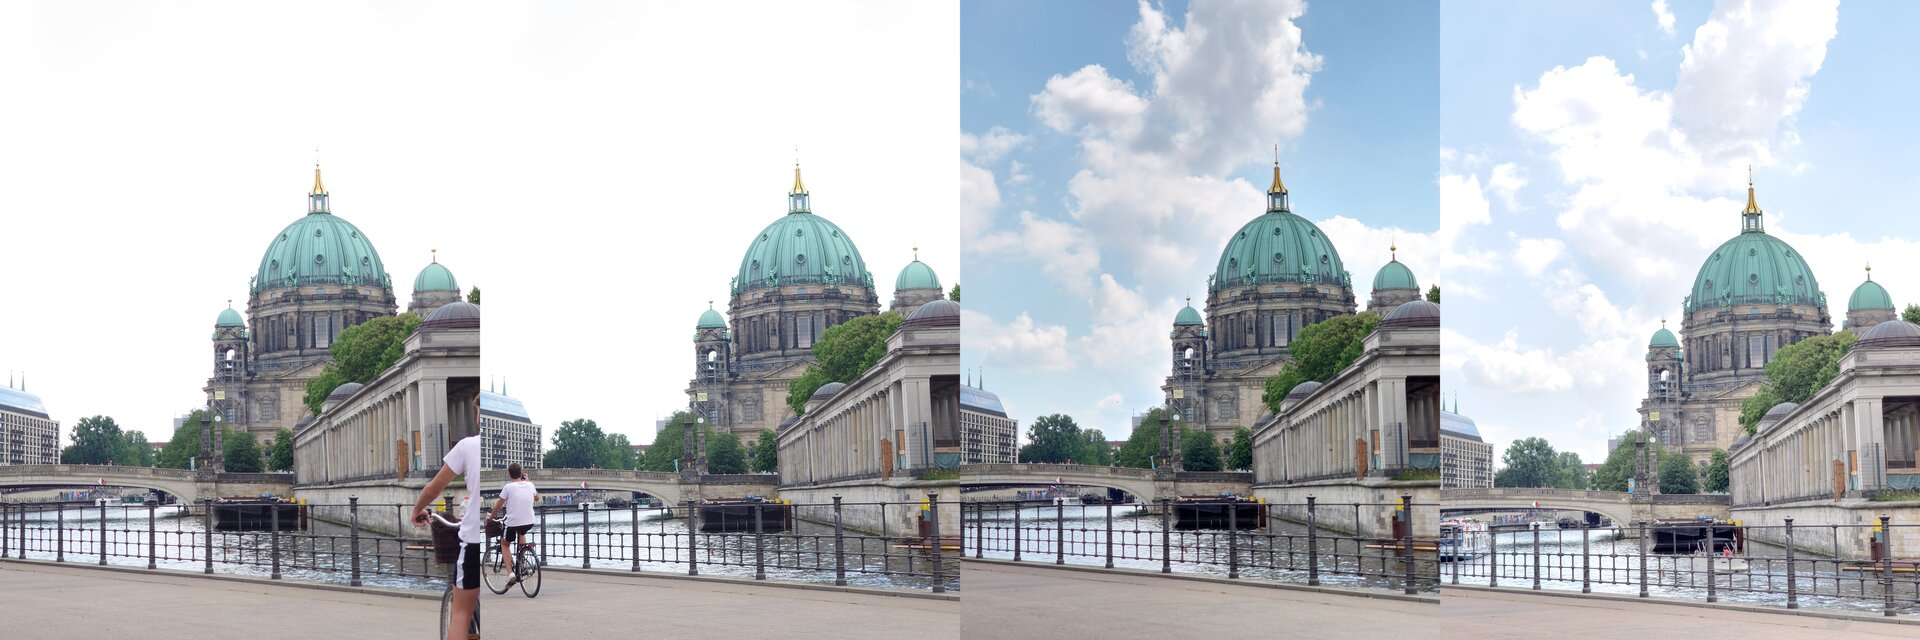 Ohne DRO/HDR vs. DRO vs. HDR vs. HDR mit langer Belichtung